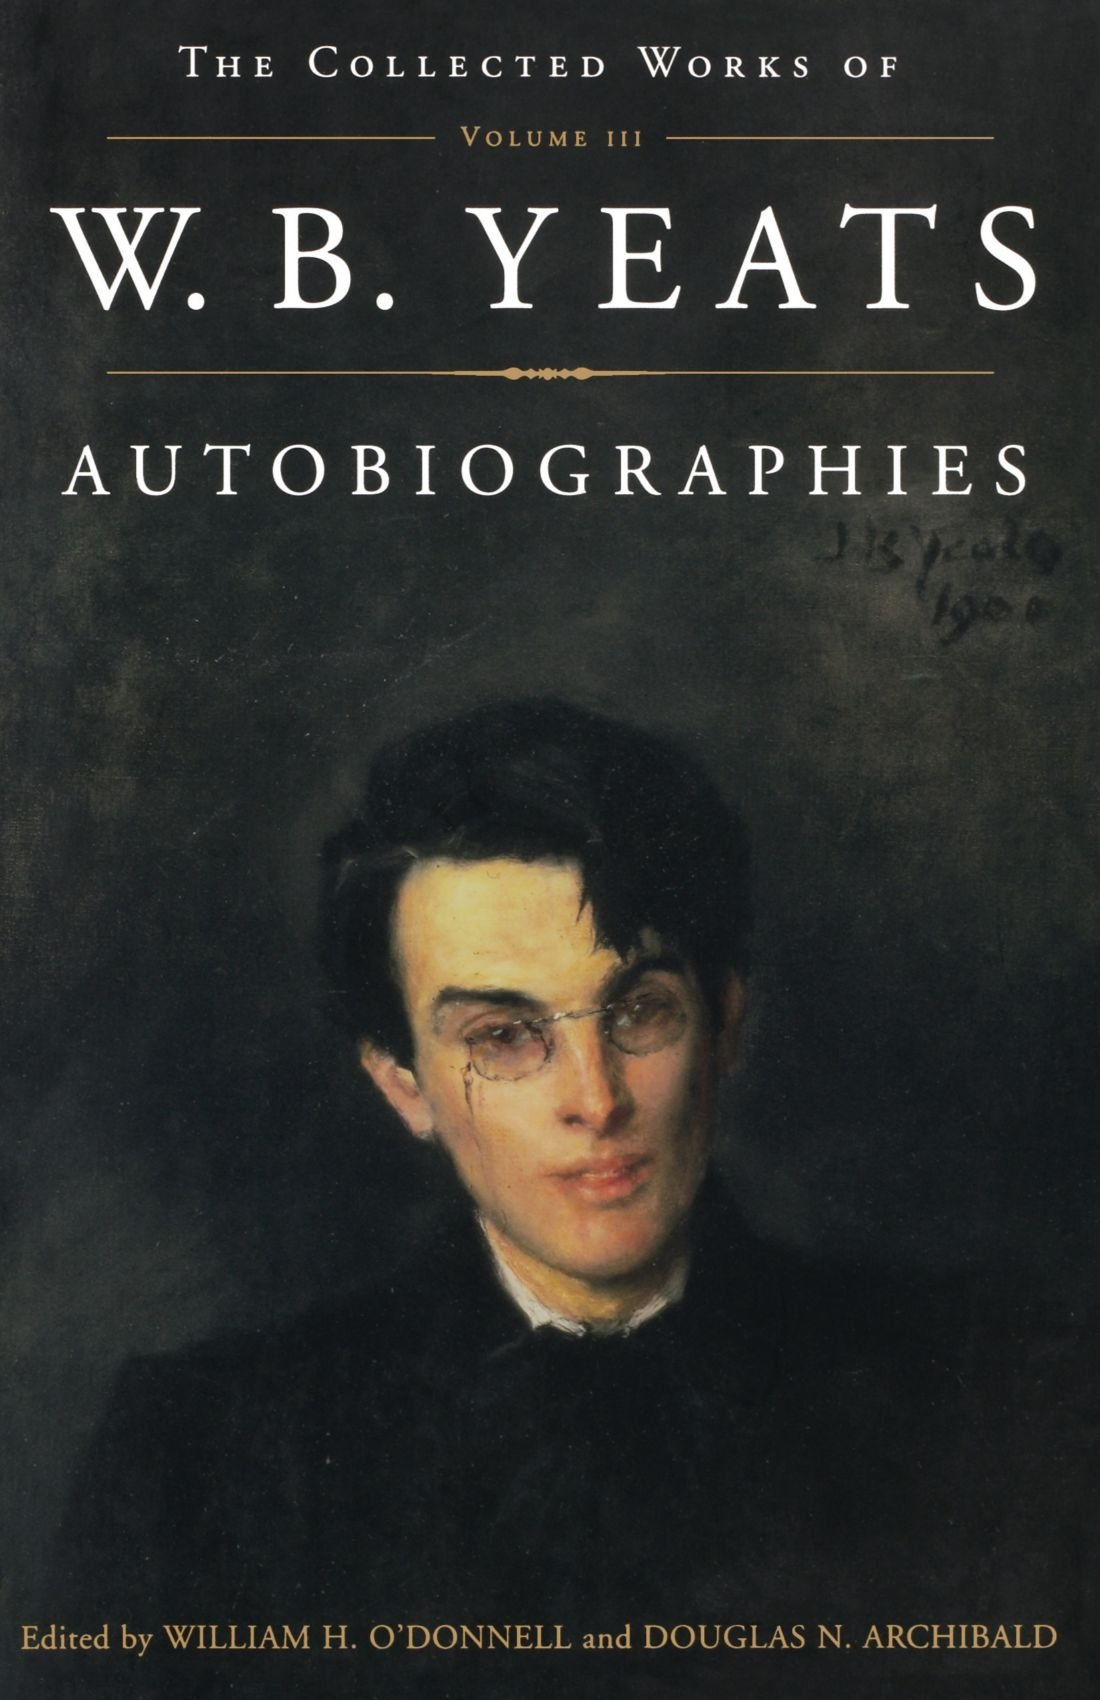 the collected works of w b yeats vol iii autobiographies the collected works of w b yeats vol iii autobiographies william butler yeats douglas archibald william o donnell 9780684853383 com books